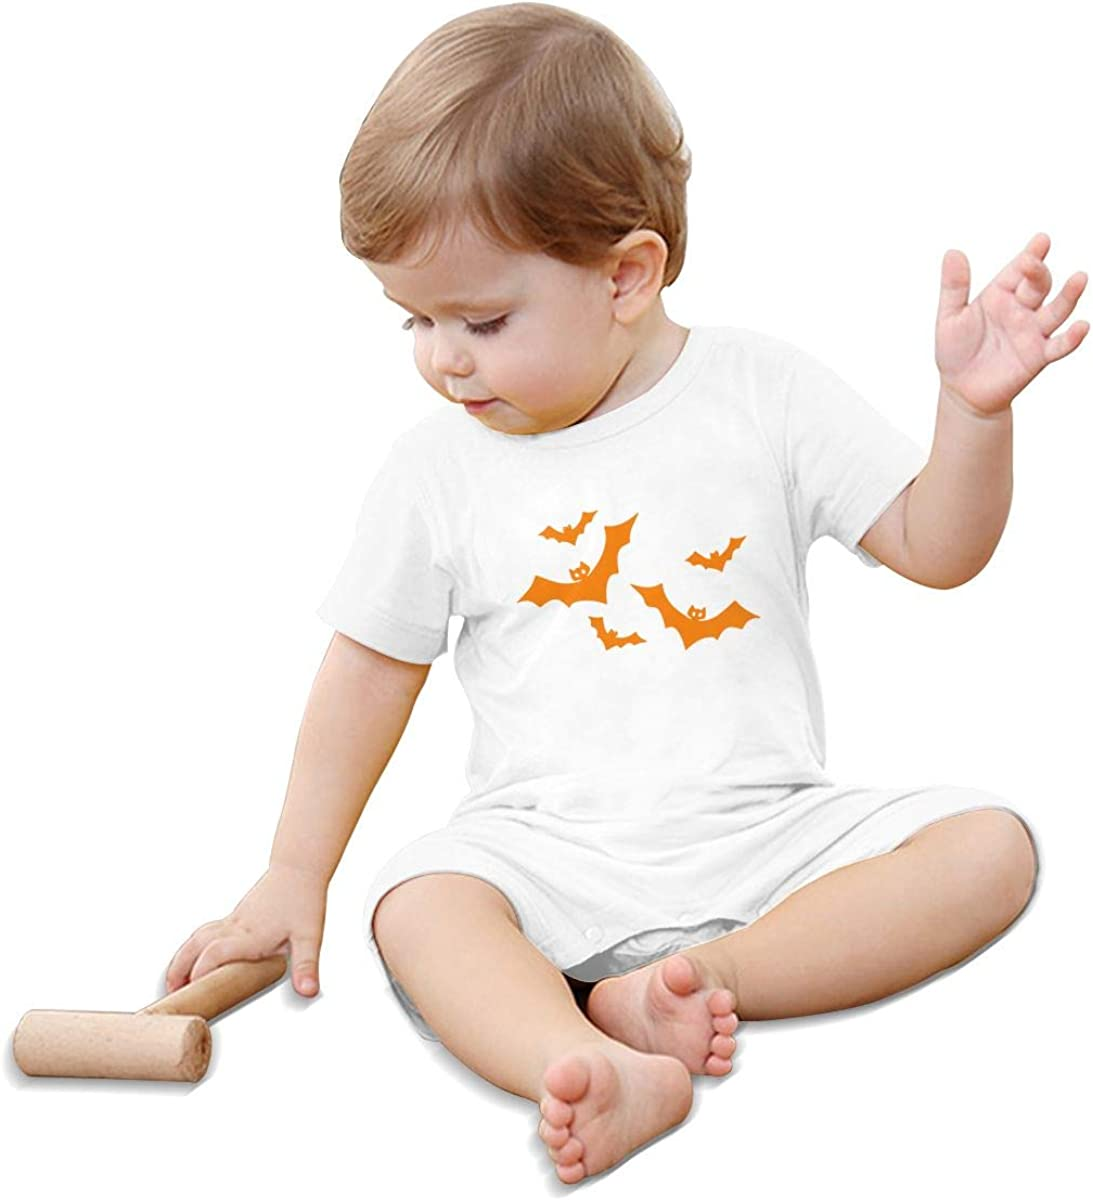 Mri-le1 Newborn Kids Short Sleeve Jumpsuit Bats Halloween Infant Short Sleeve Romper Jumpsuit